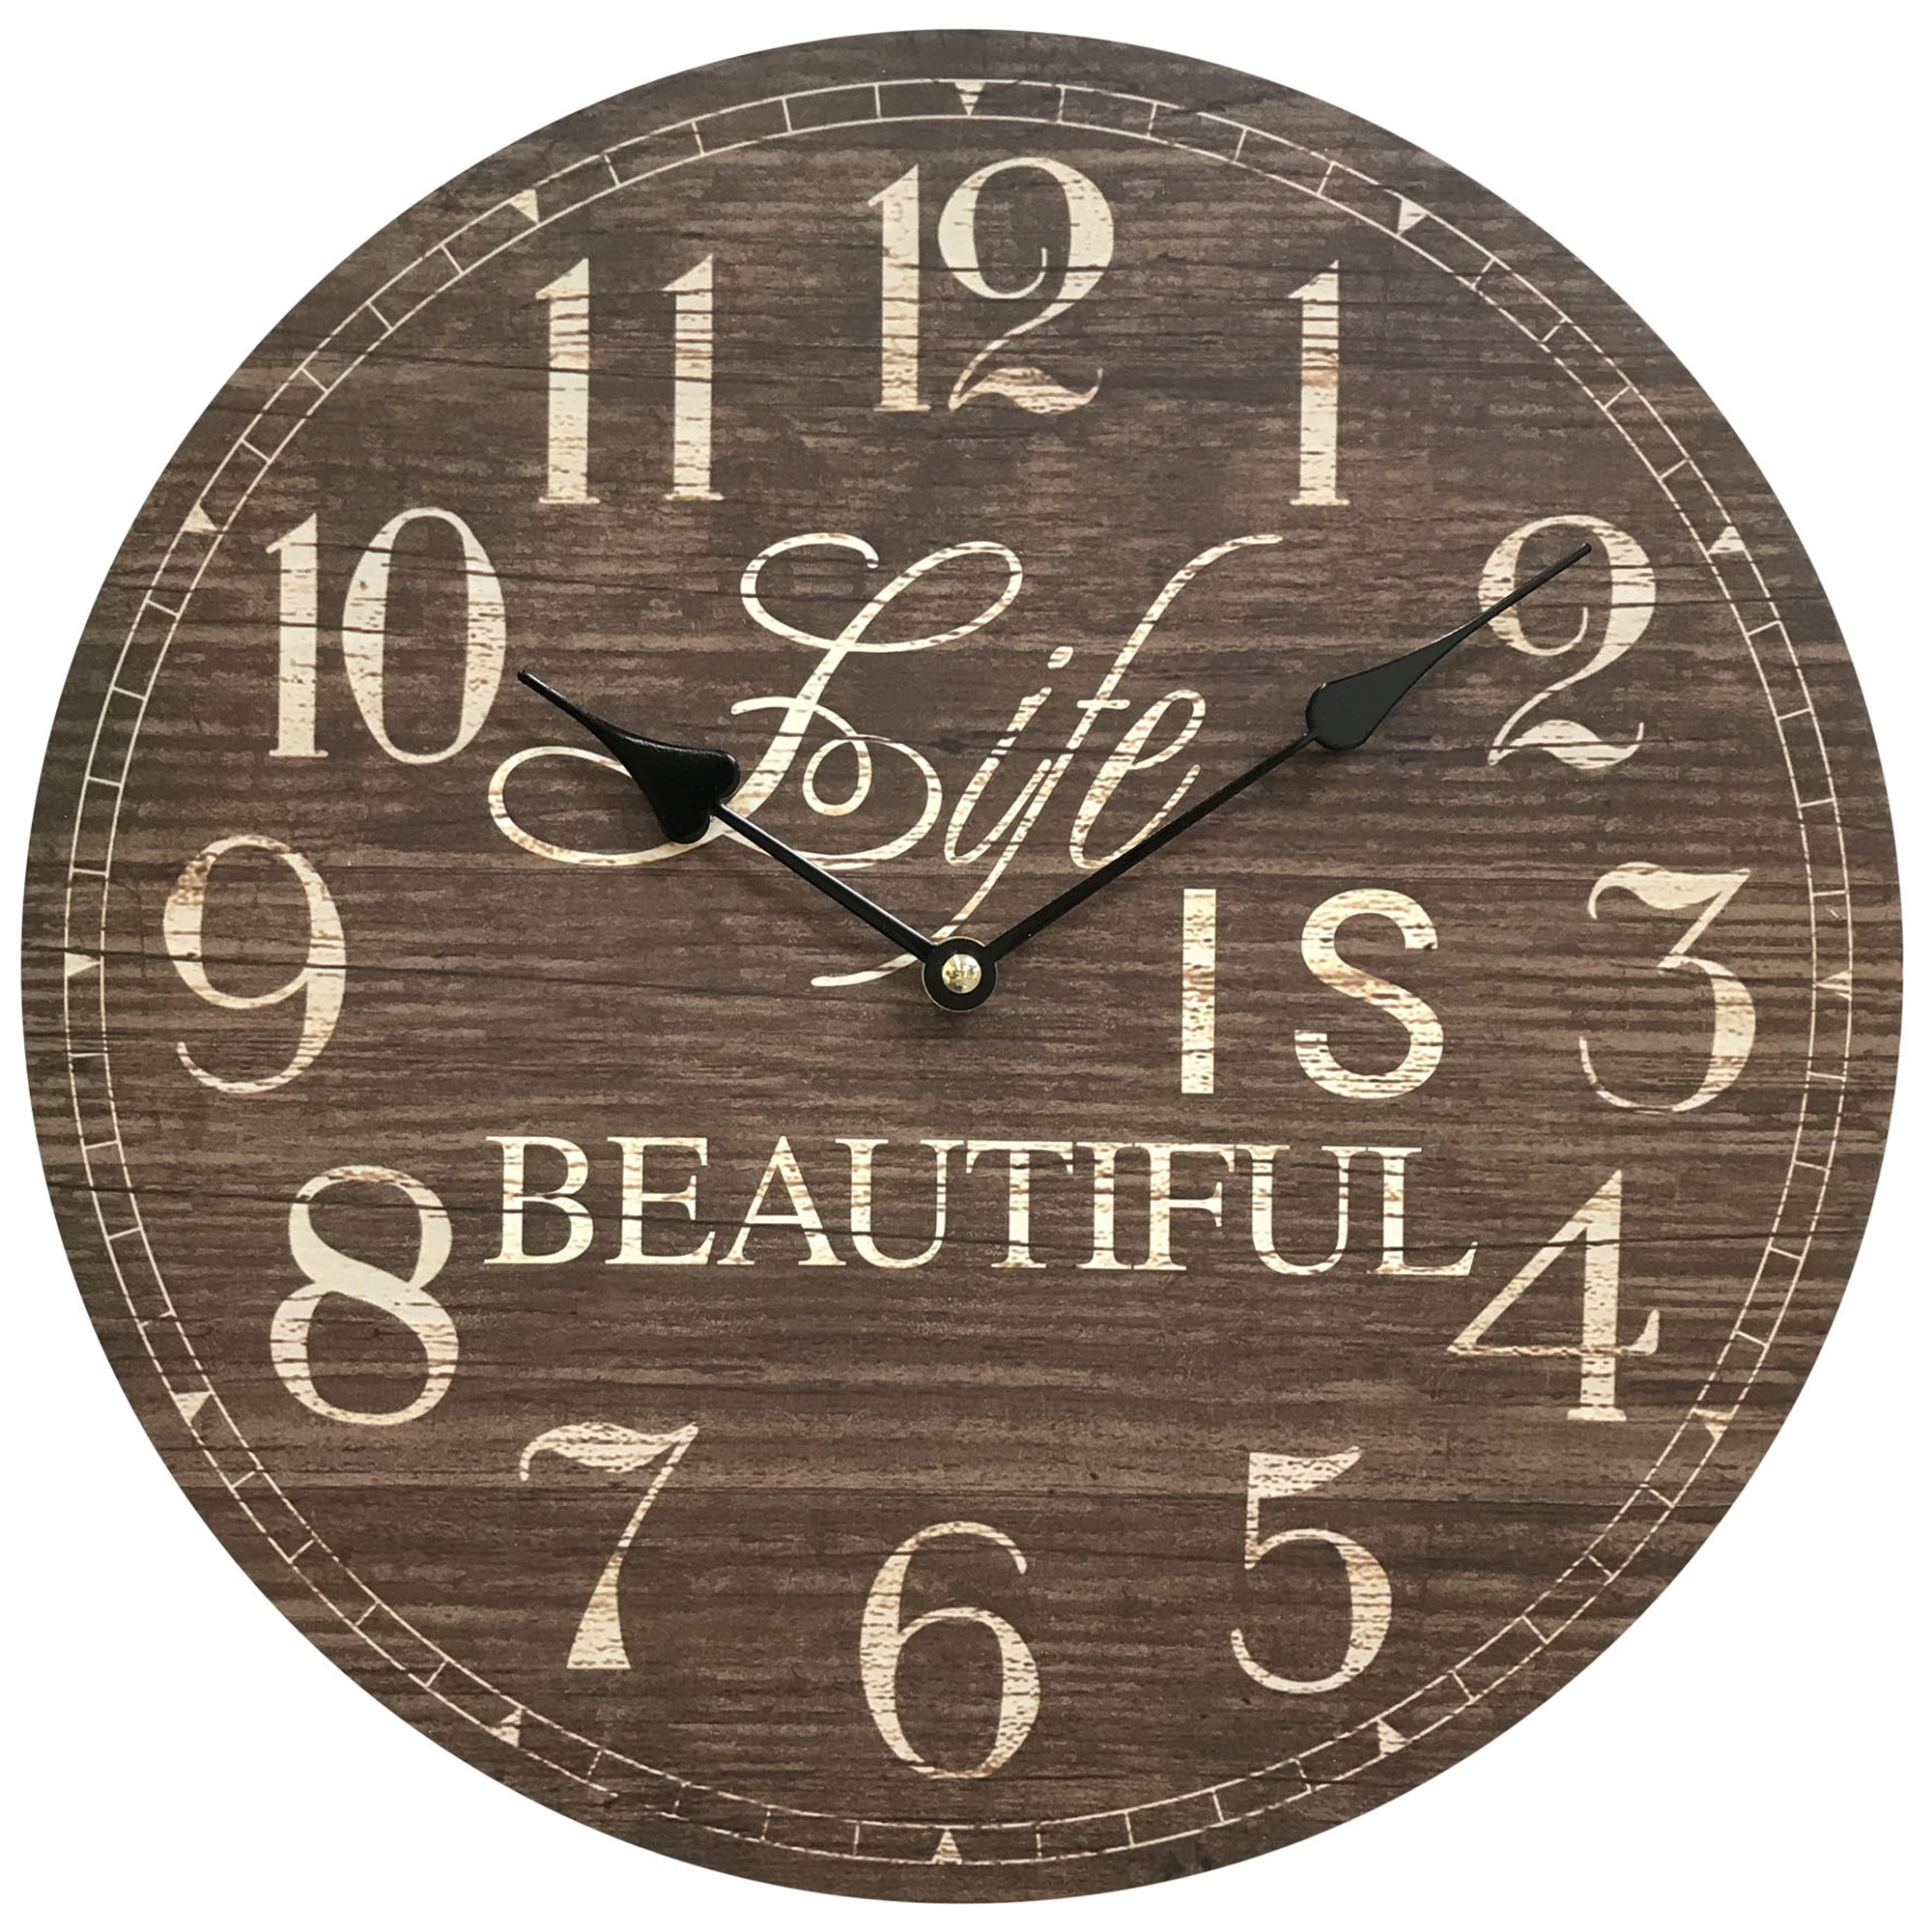 "Life is Beautiful Wooden Clock; Diameter: 13.5"", MDF sturdy construct. Hang in the office, dorm, shop, home to have postive impatc"